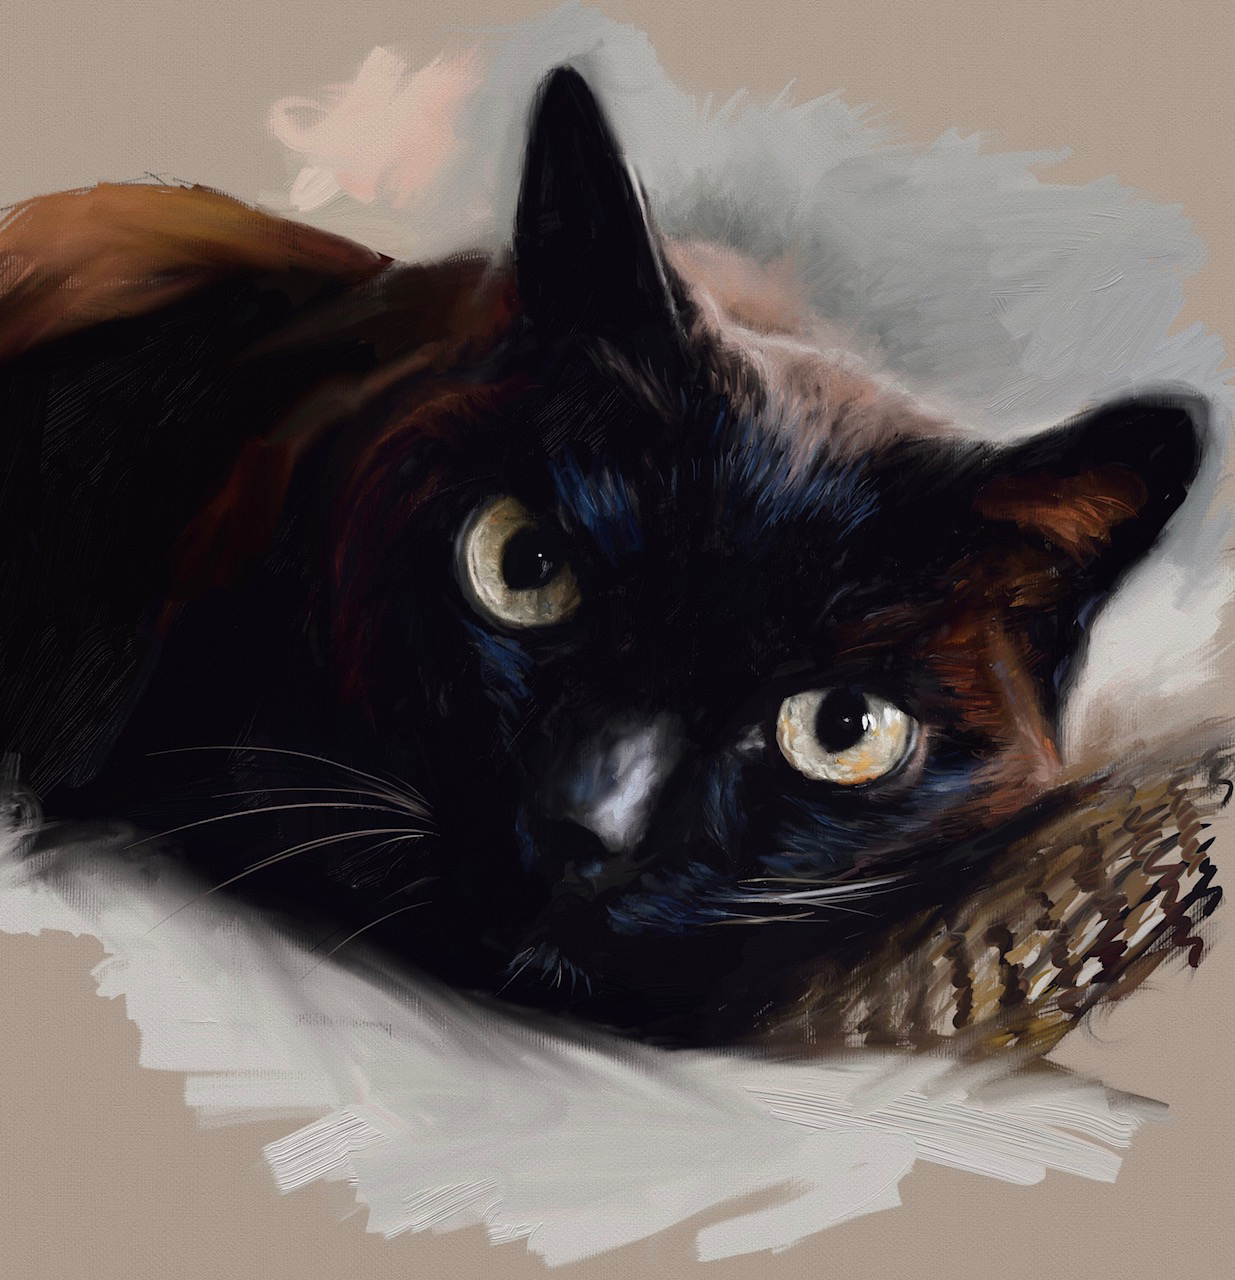 How To Paint A Cat In Oil Step-By-Step With Jorge & Nacho